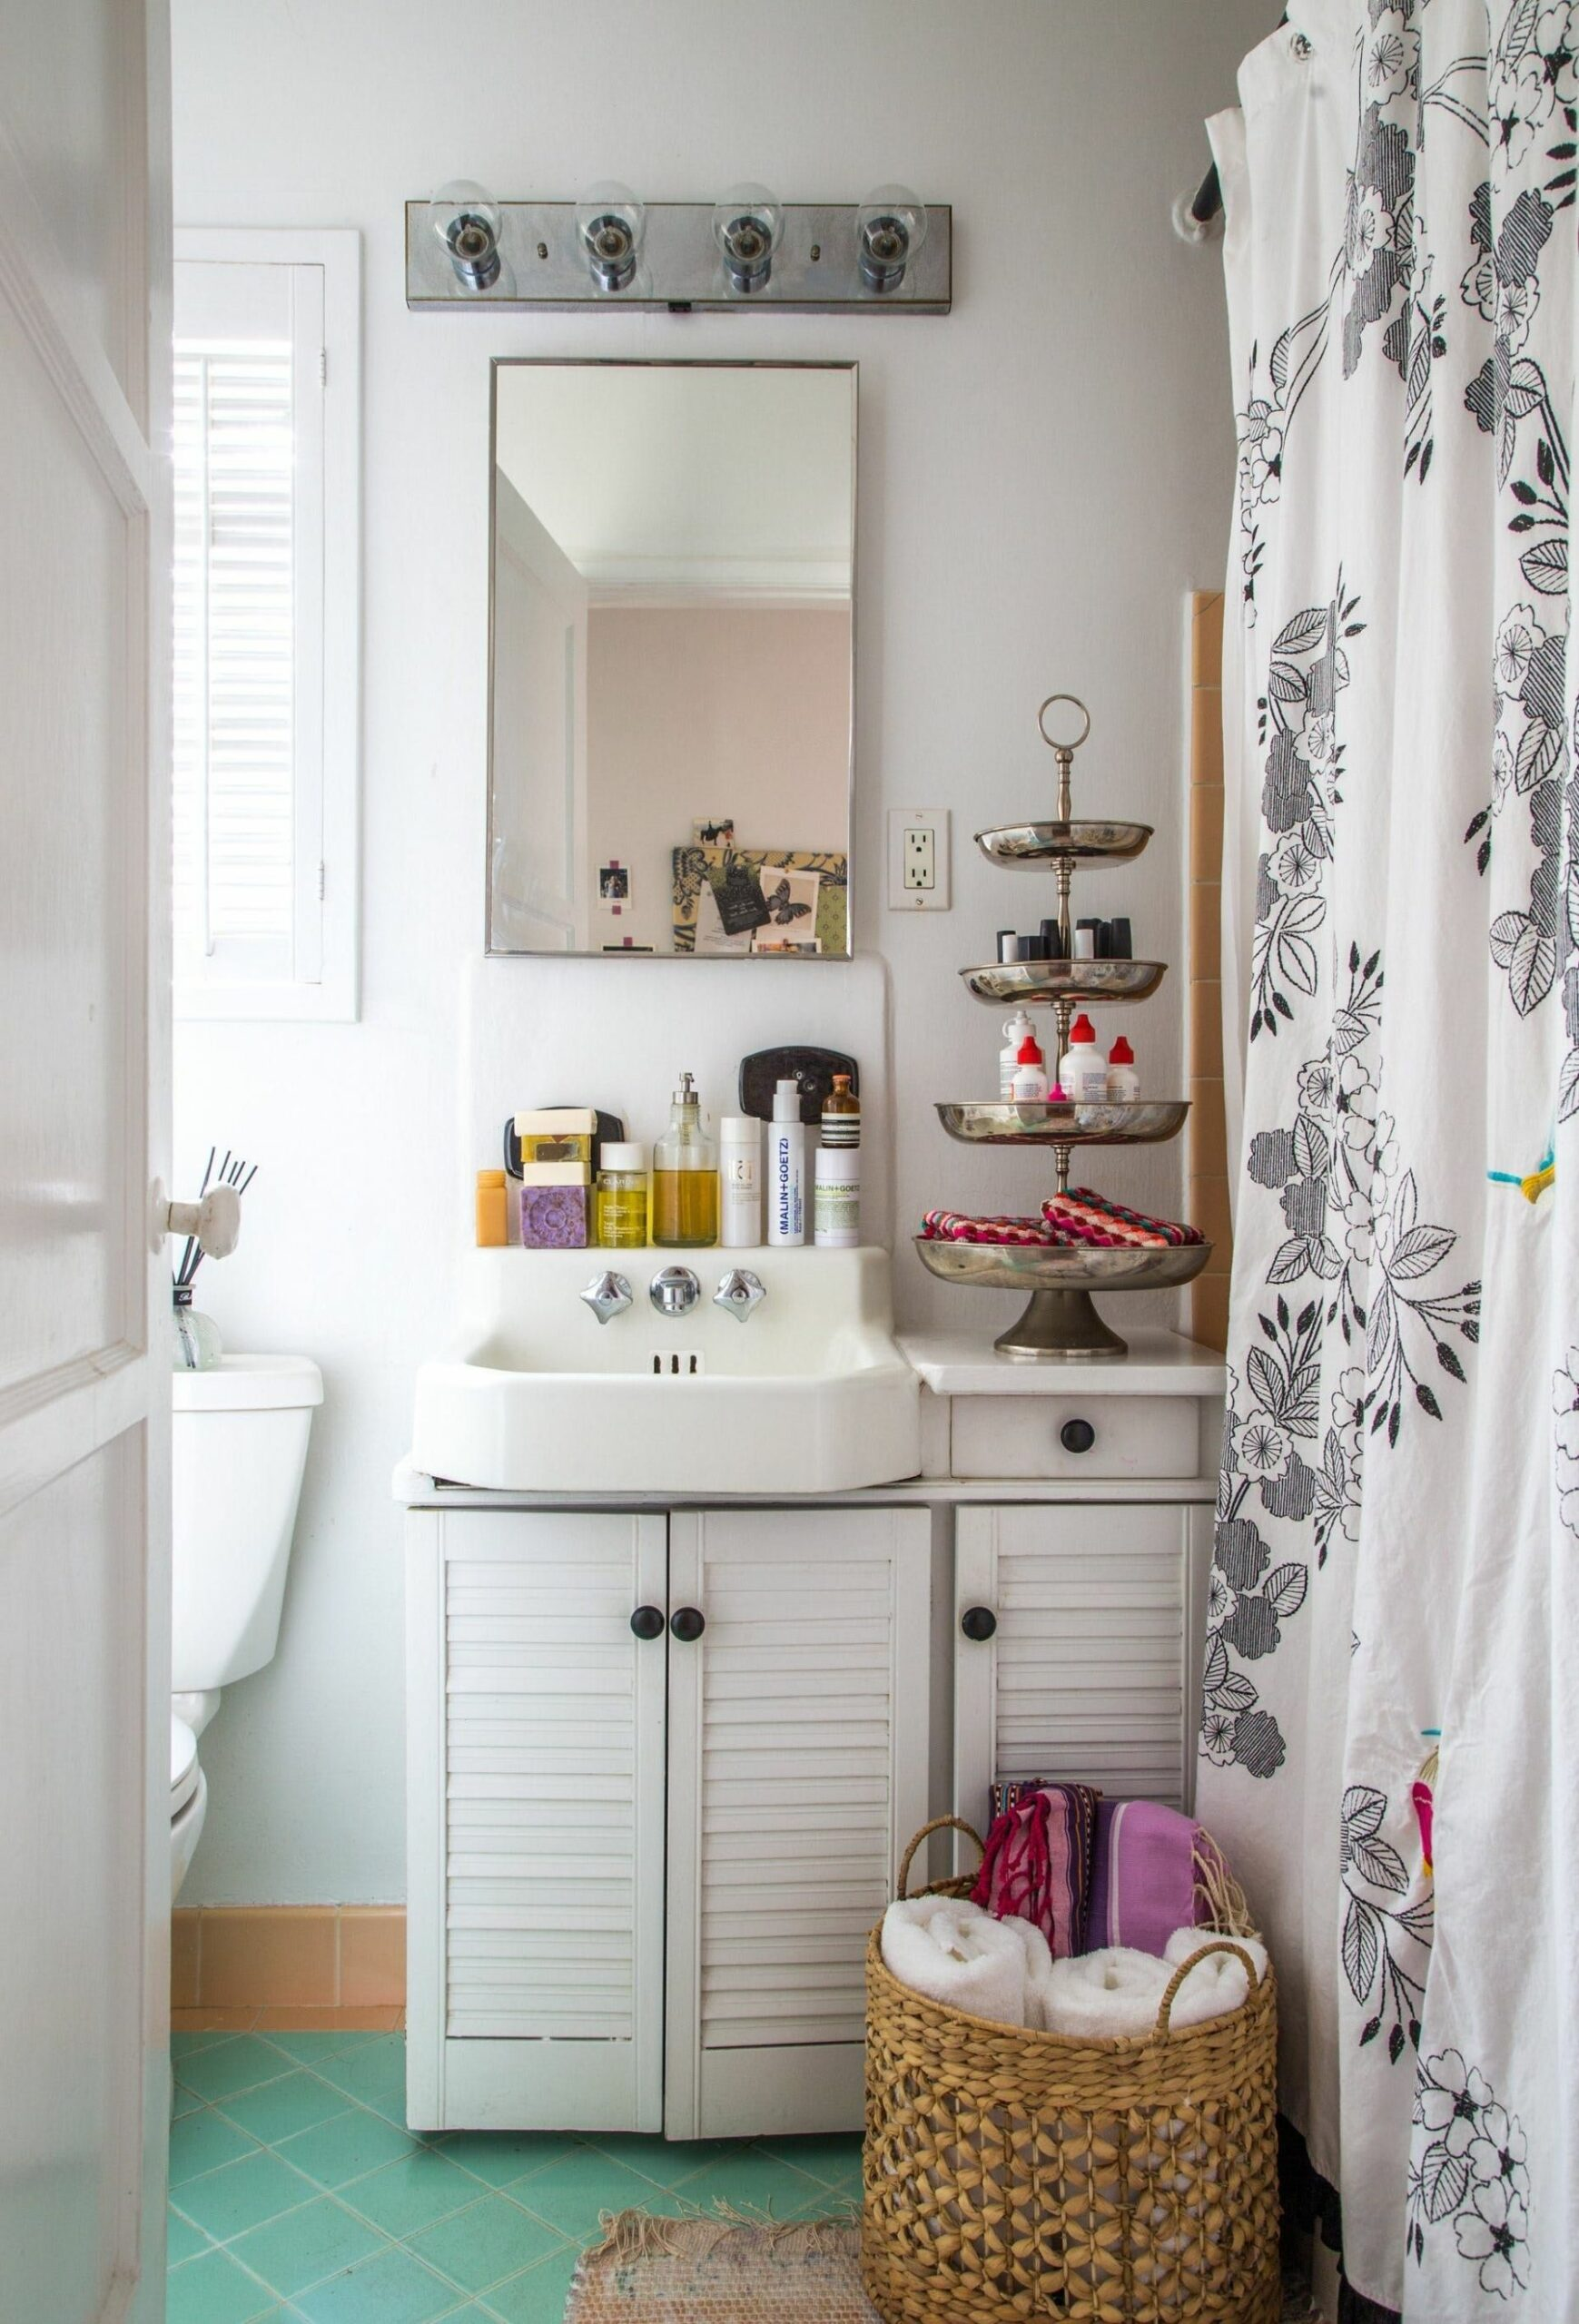 How to Love Your Tiny Rental Bathroom: Styling Ideas from 9 Real ..